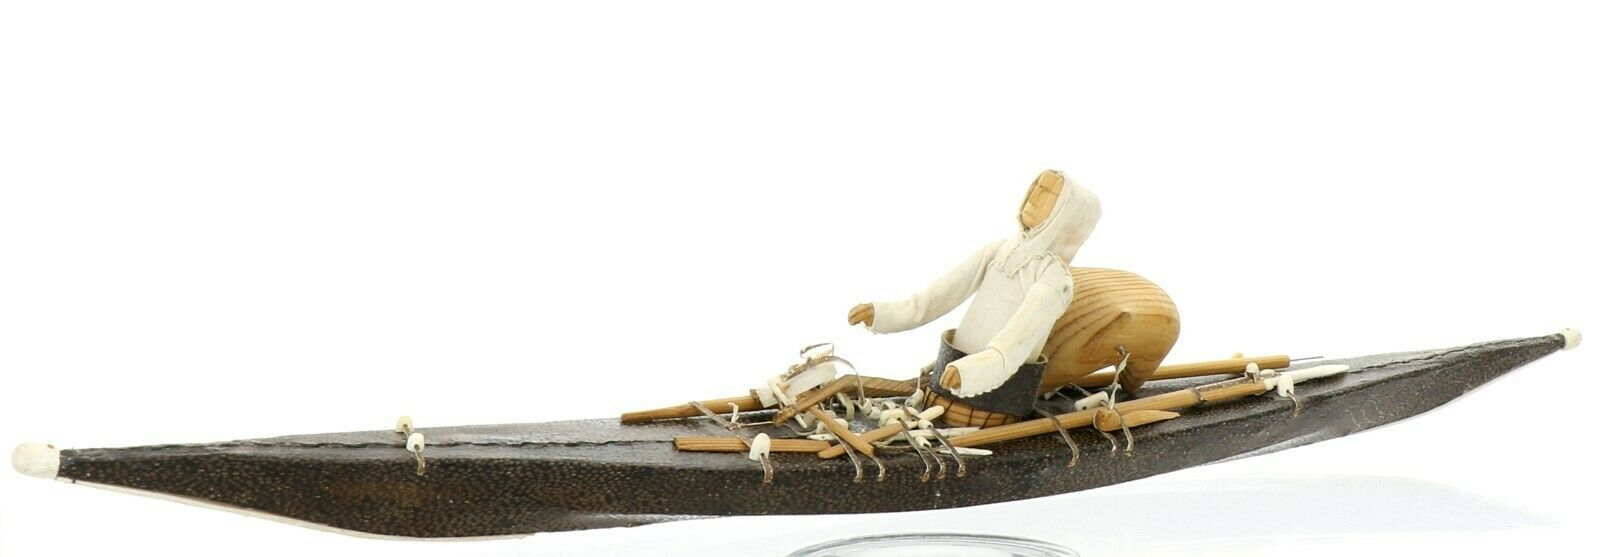 Greenlandic Inuit Miniature Skin on Frame Kayak Model in Exceptional Condition